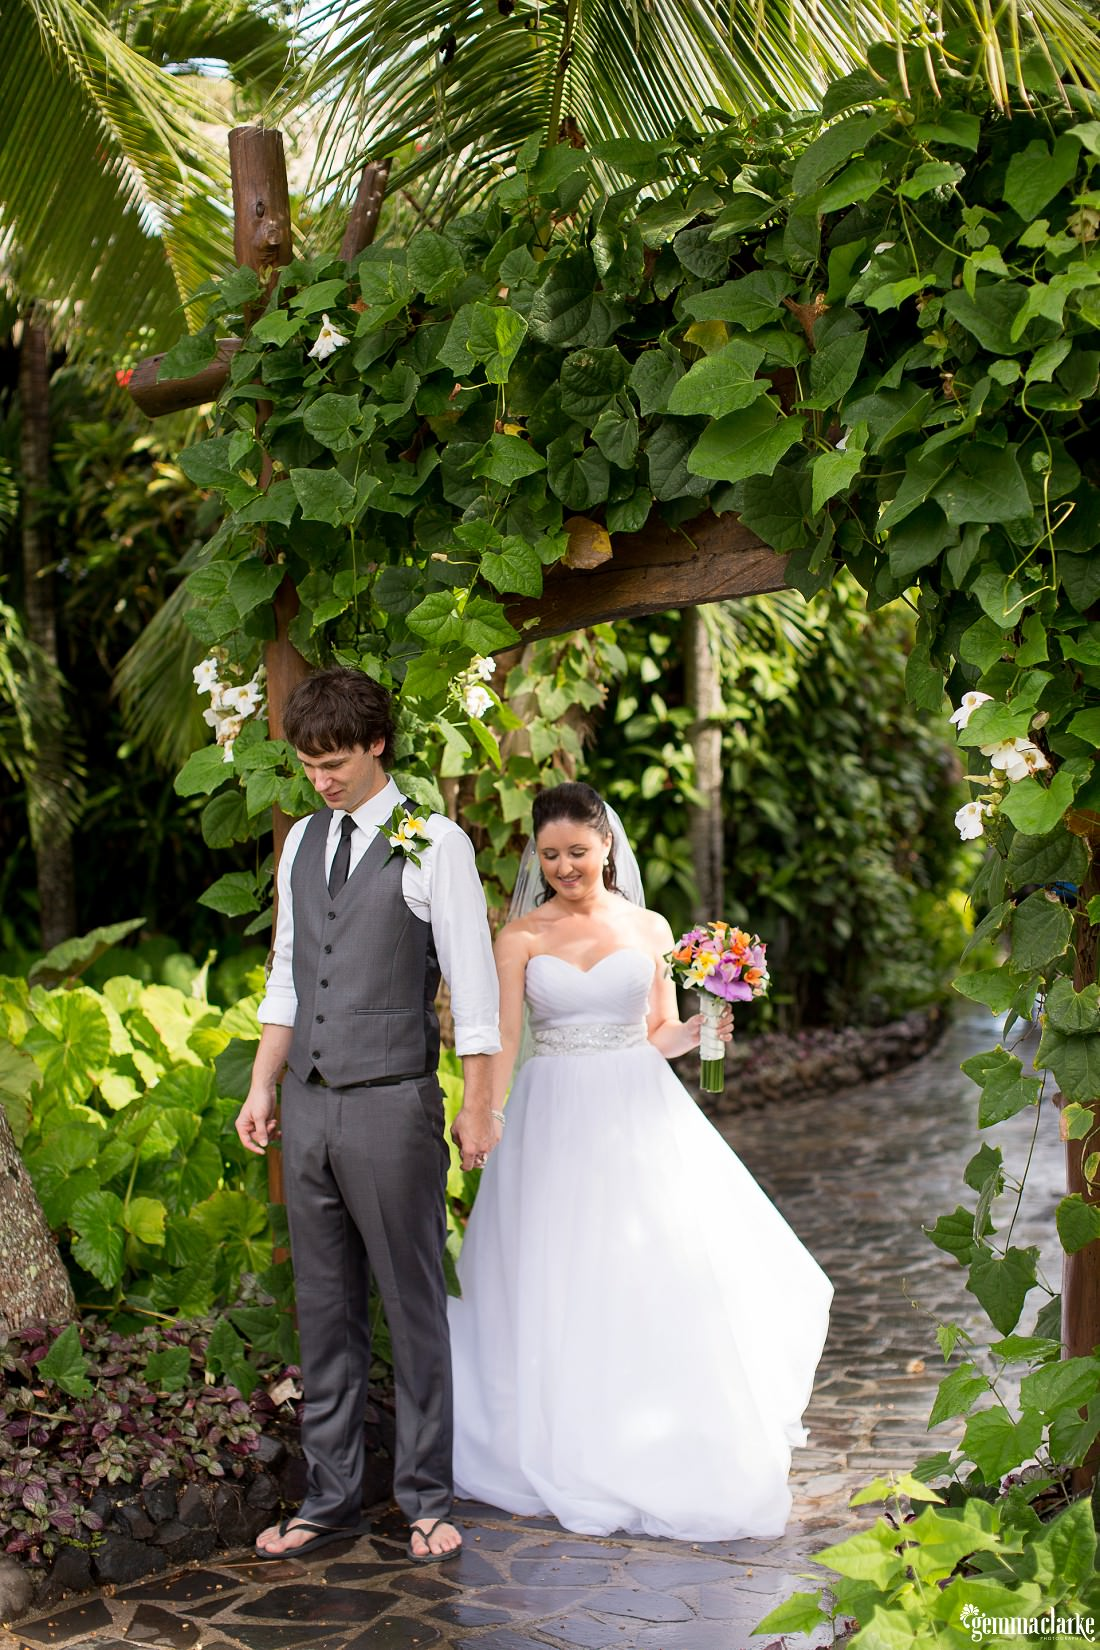 gemmaclarkephotography_south-pacific-destination-wedding_island-wedding_natalie-and-alex_0026